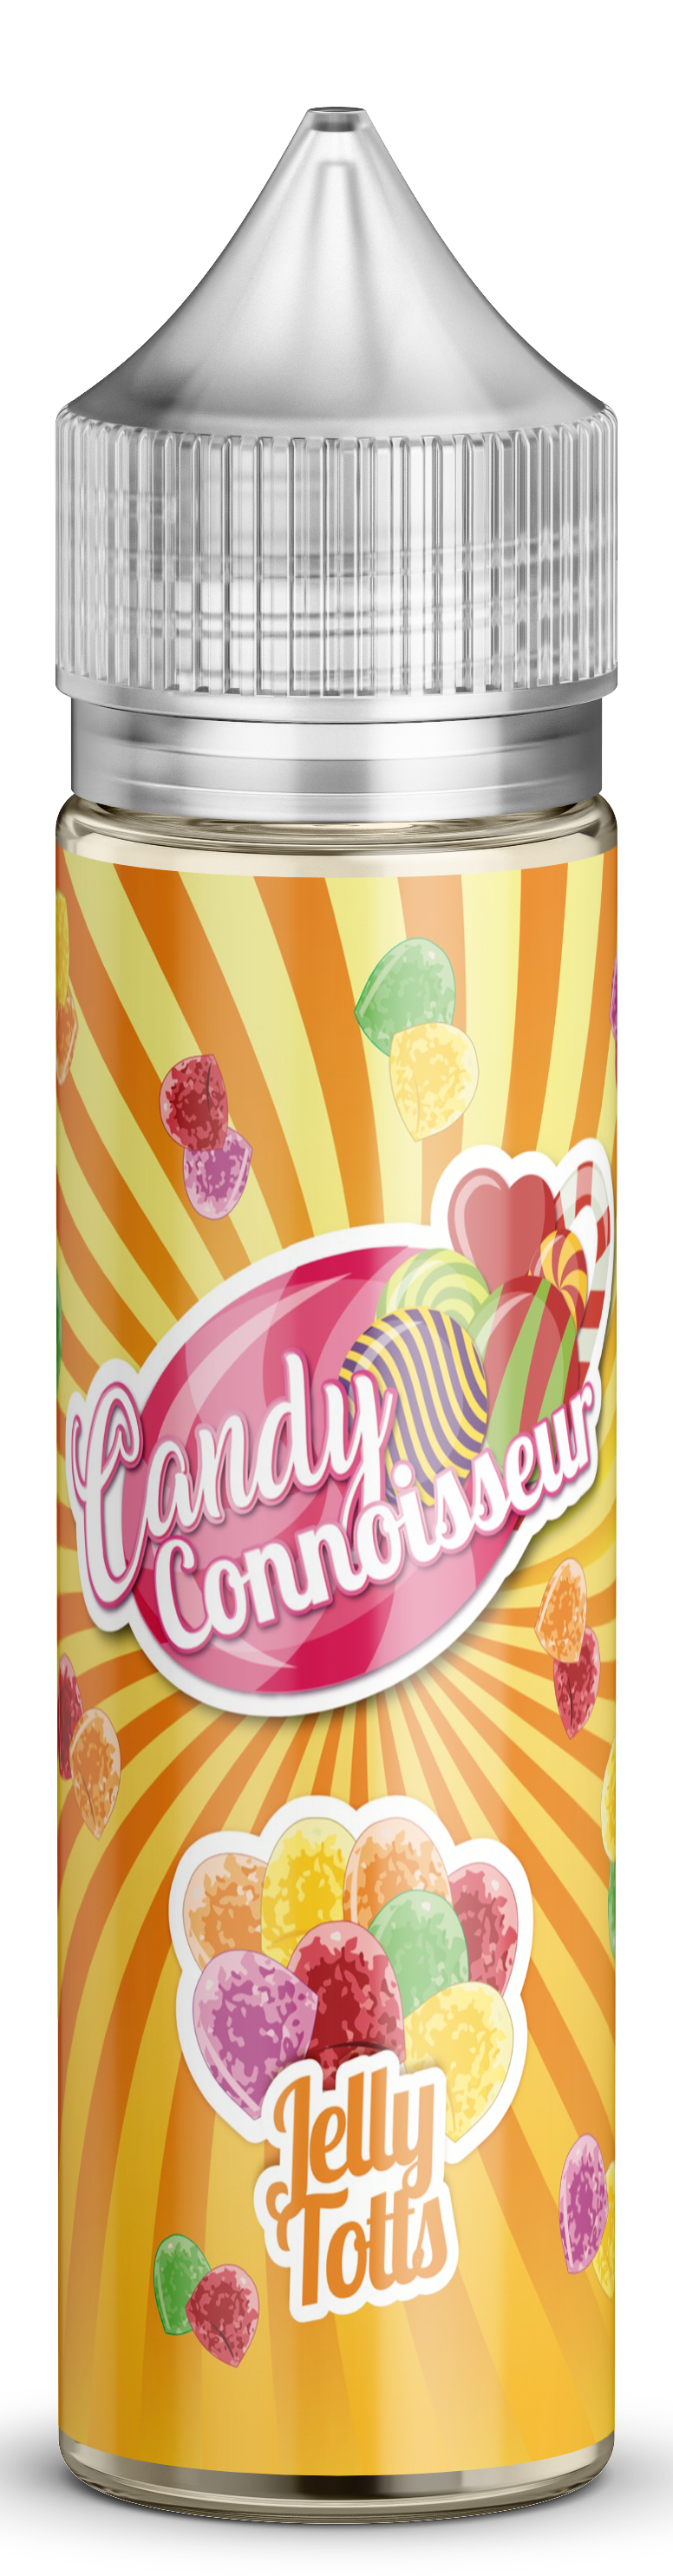 Jelly Totts - Candy 50ml